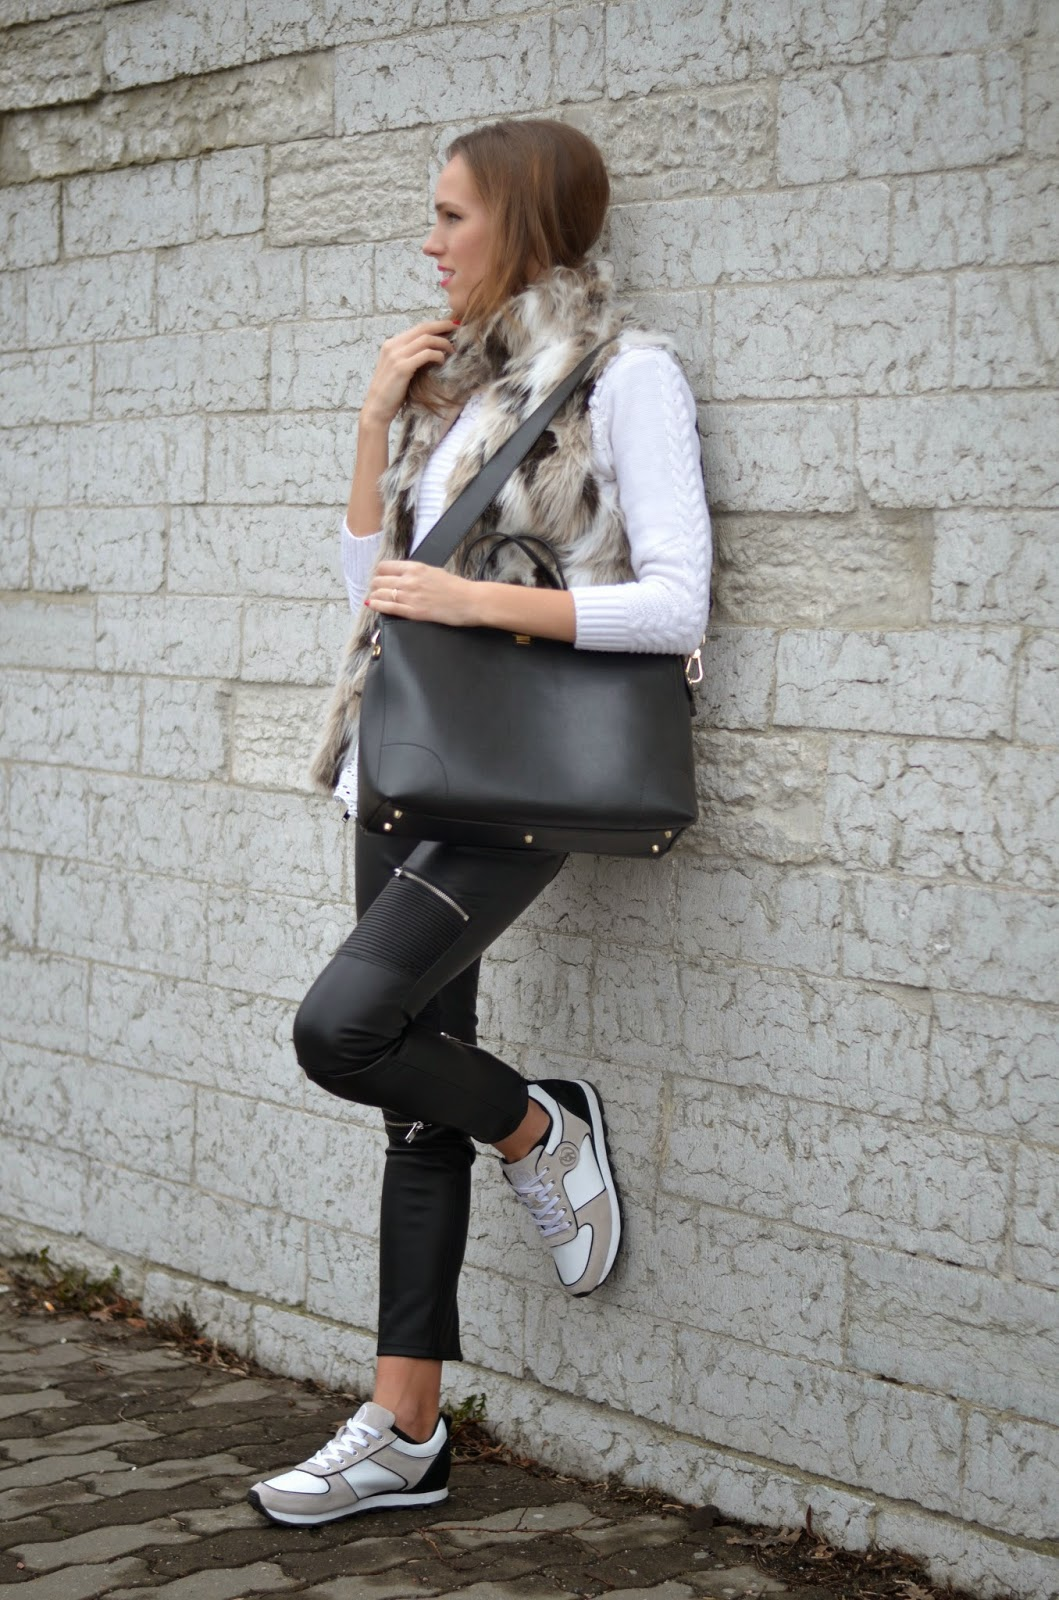 armani-sneakers-zara-leather-trousers-furla-black-bag kristjaana mere